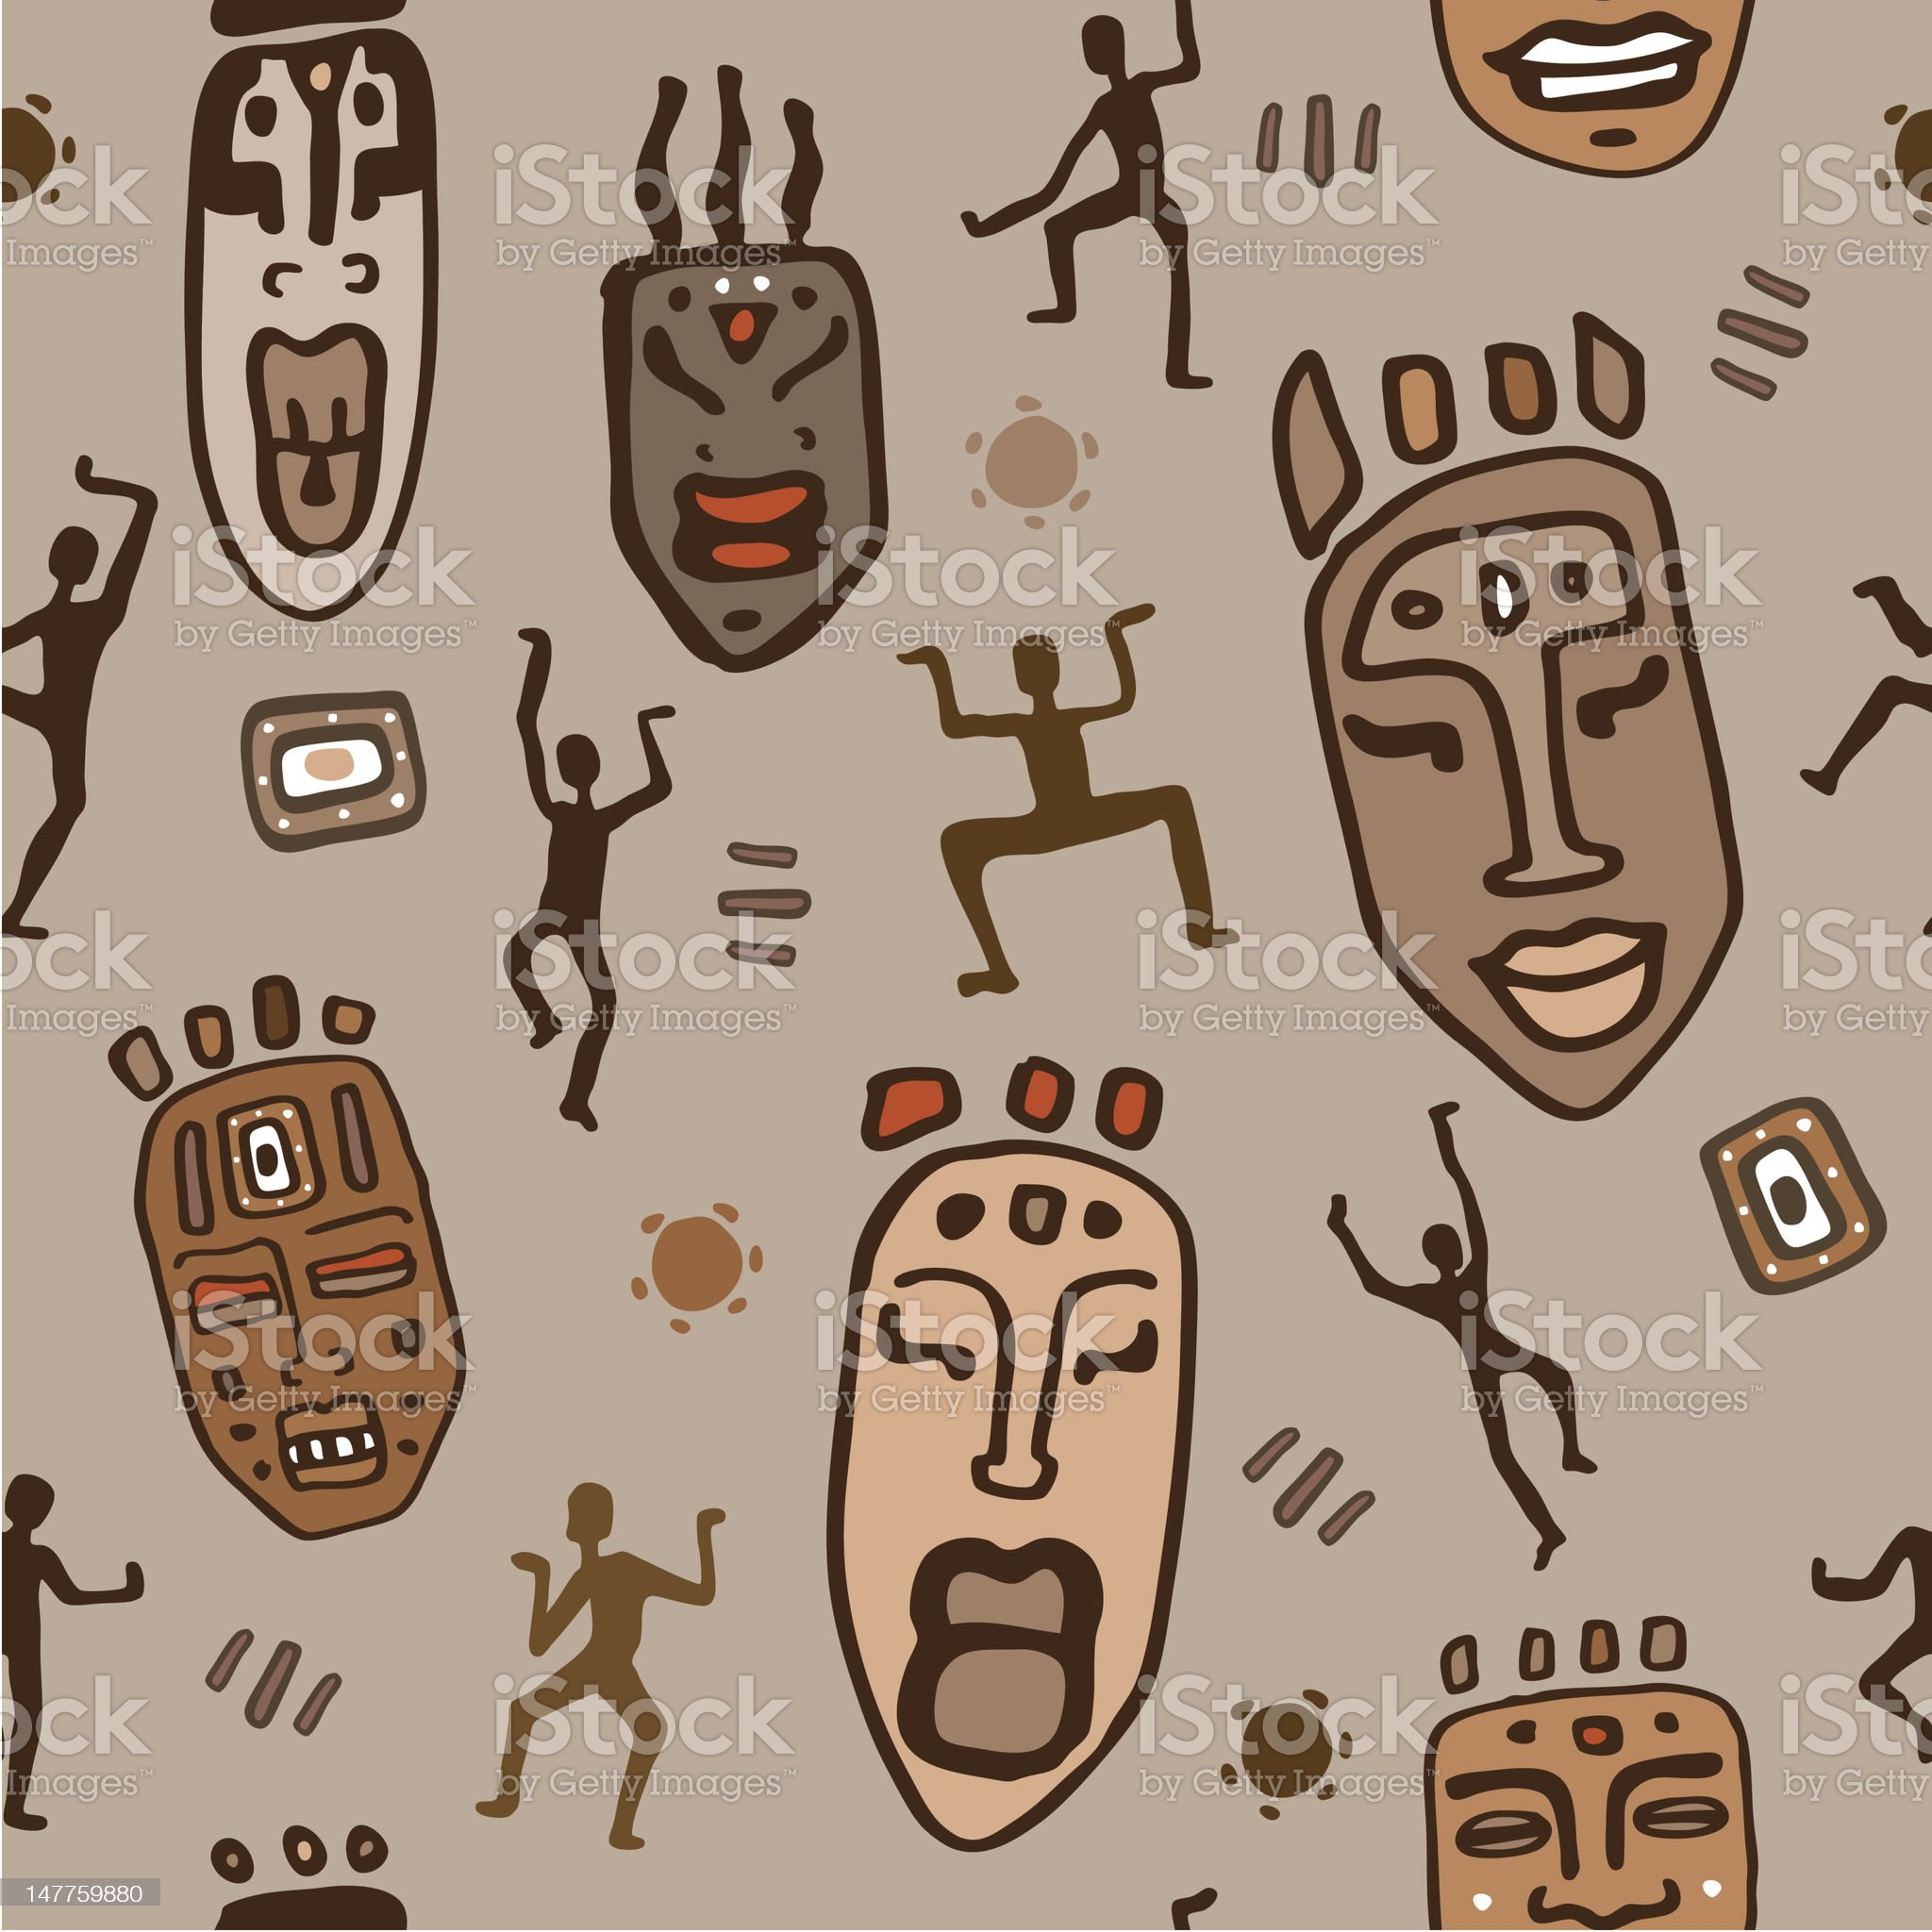 African ethnic pattern royalty-free stock vector art